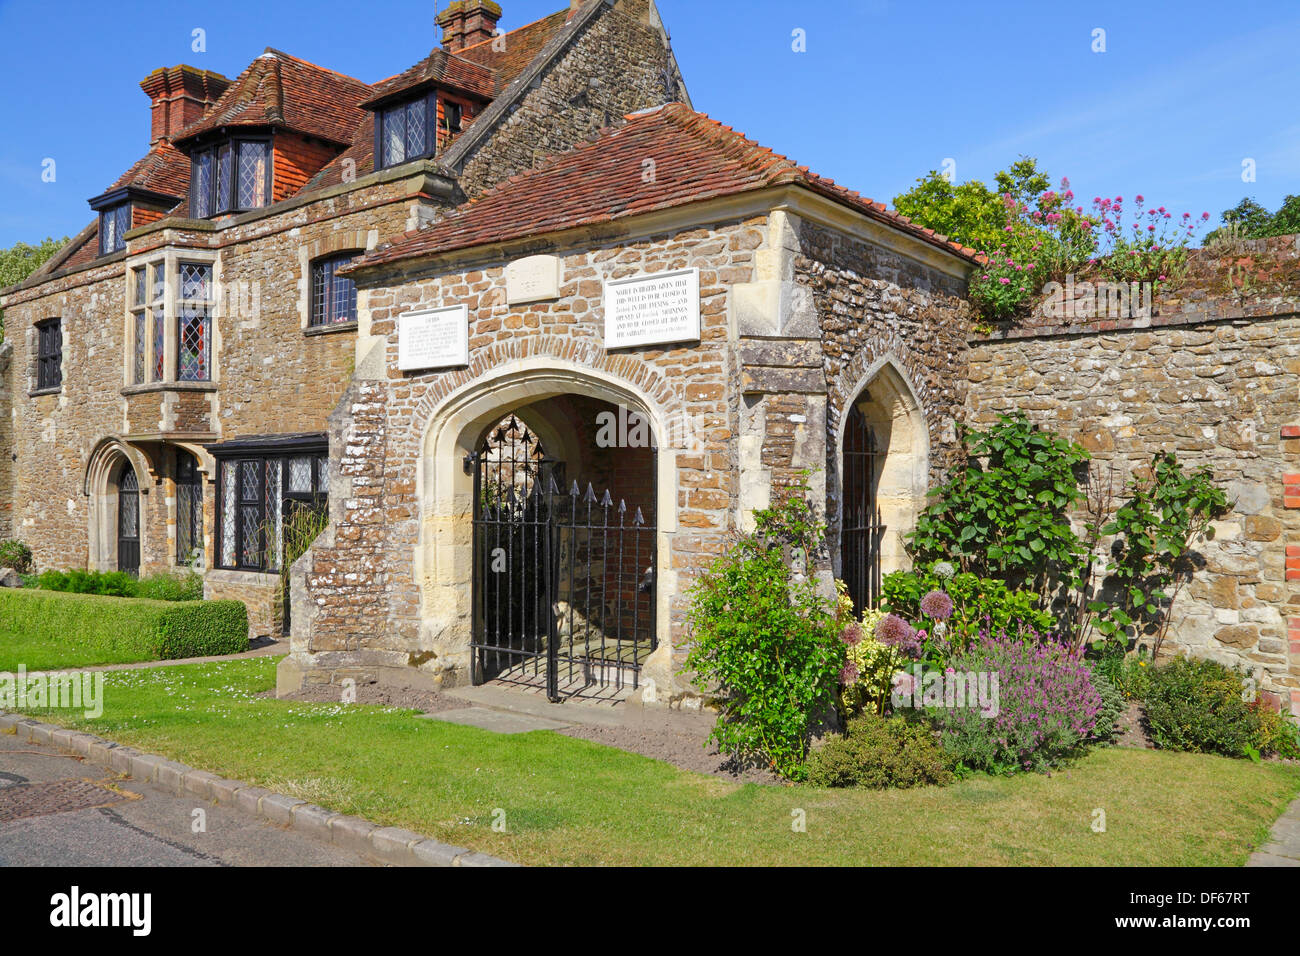 The Armoury and village pump Winchelsea East Sussex England UK - Stock Image